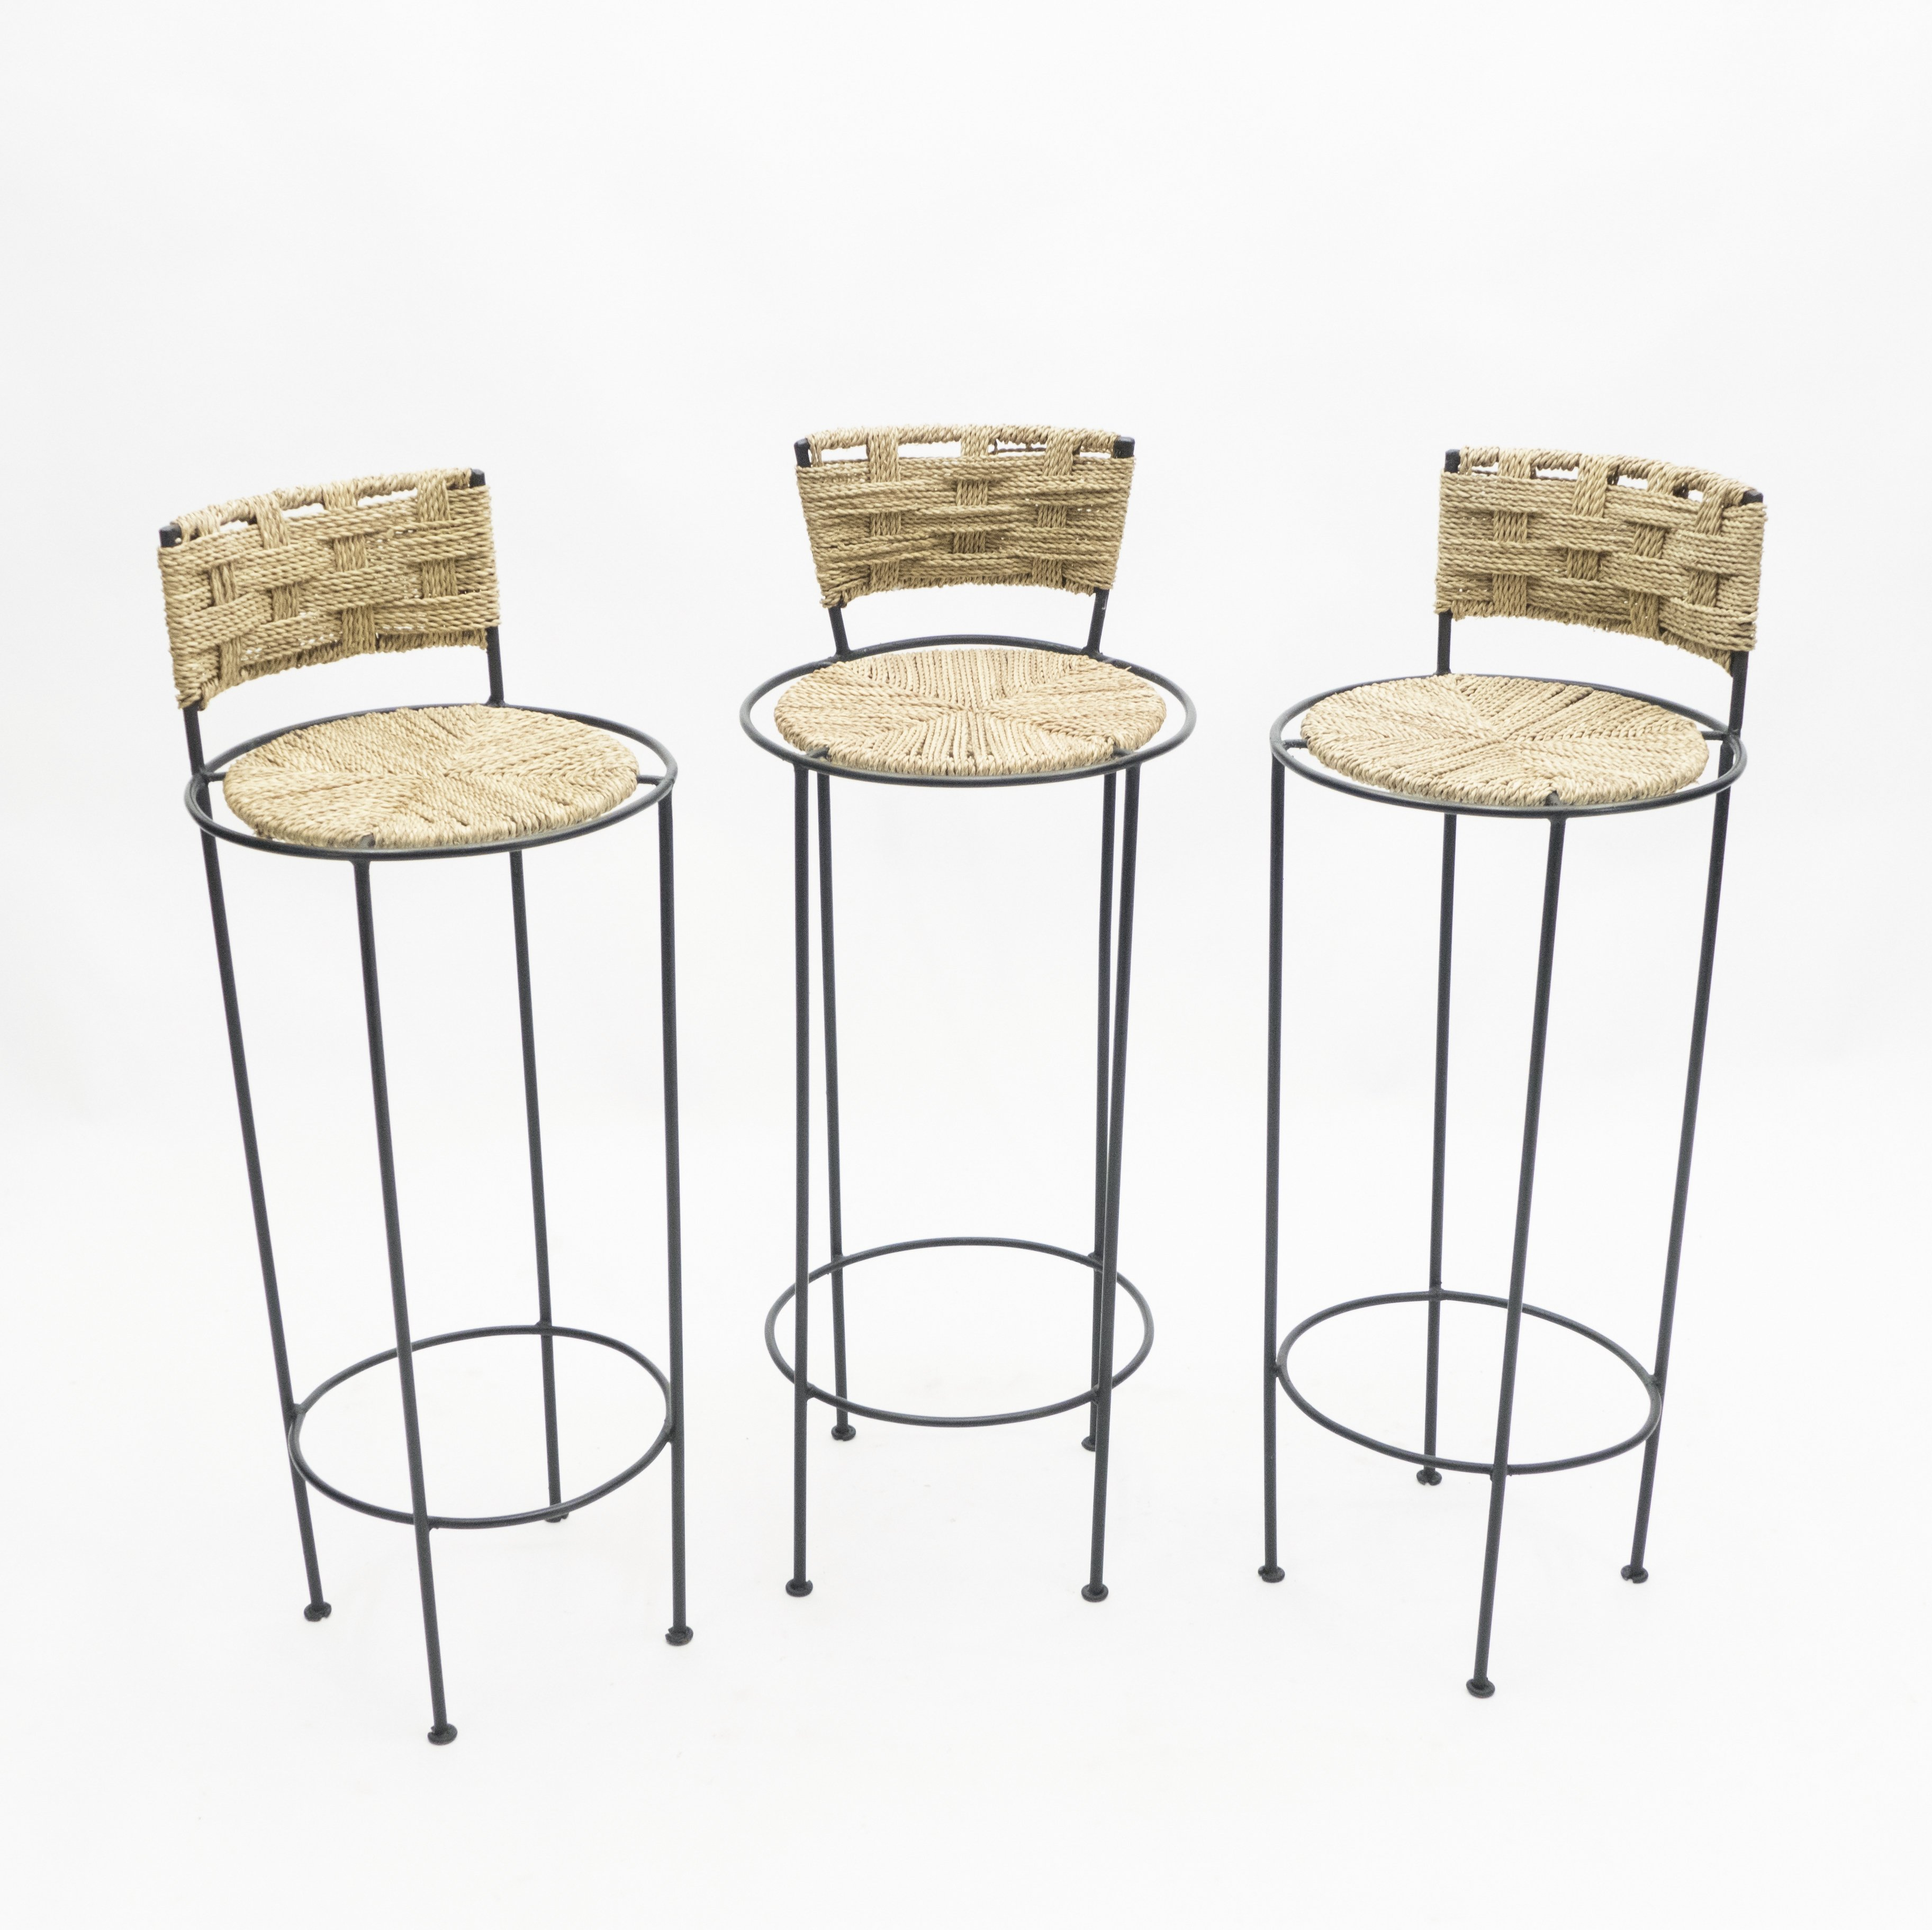 Image of: Set Of 3 French Bar Stools In Rope Metal By Adrien Audoux Frida Minet 1950s 144203